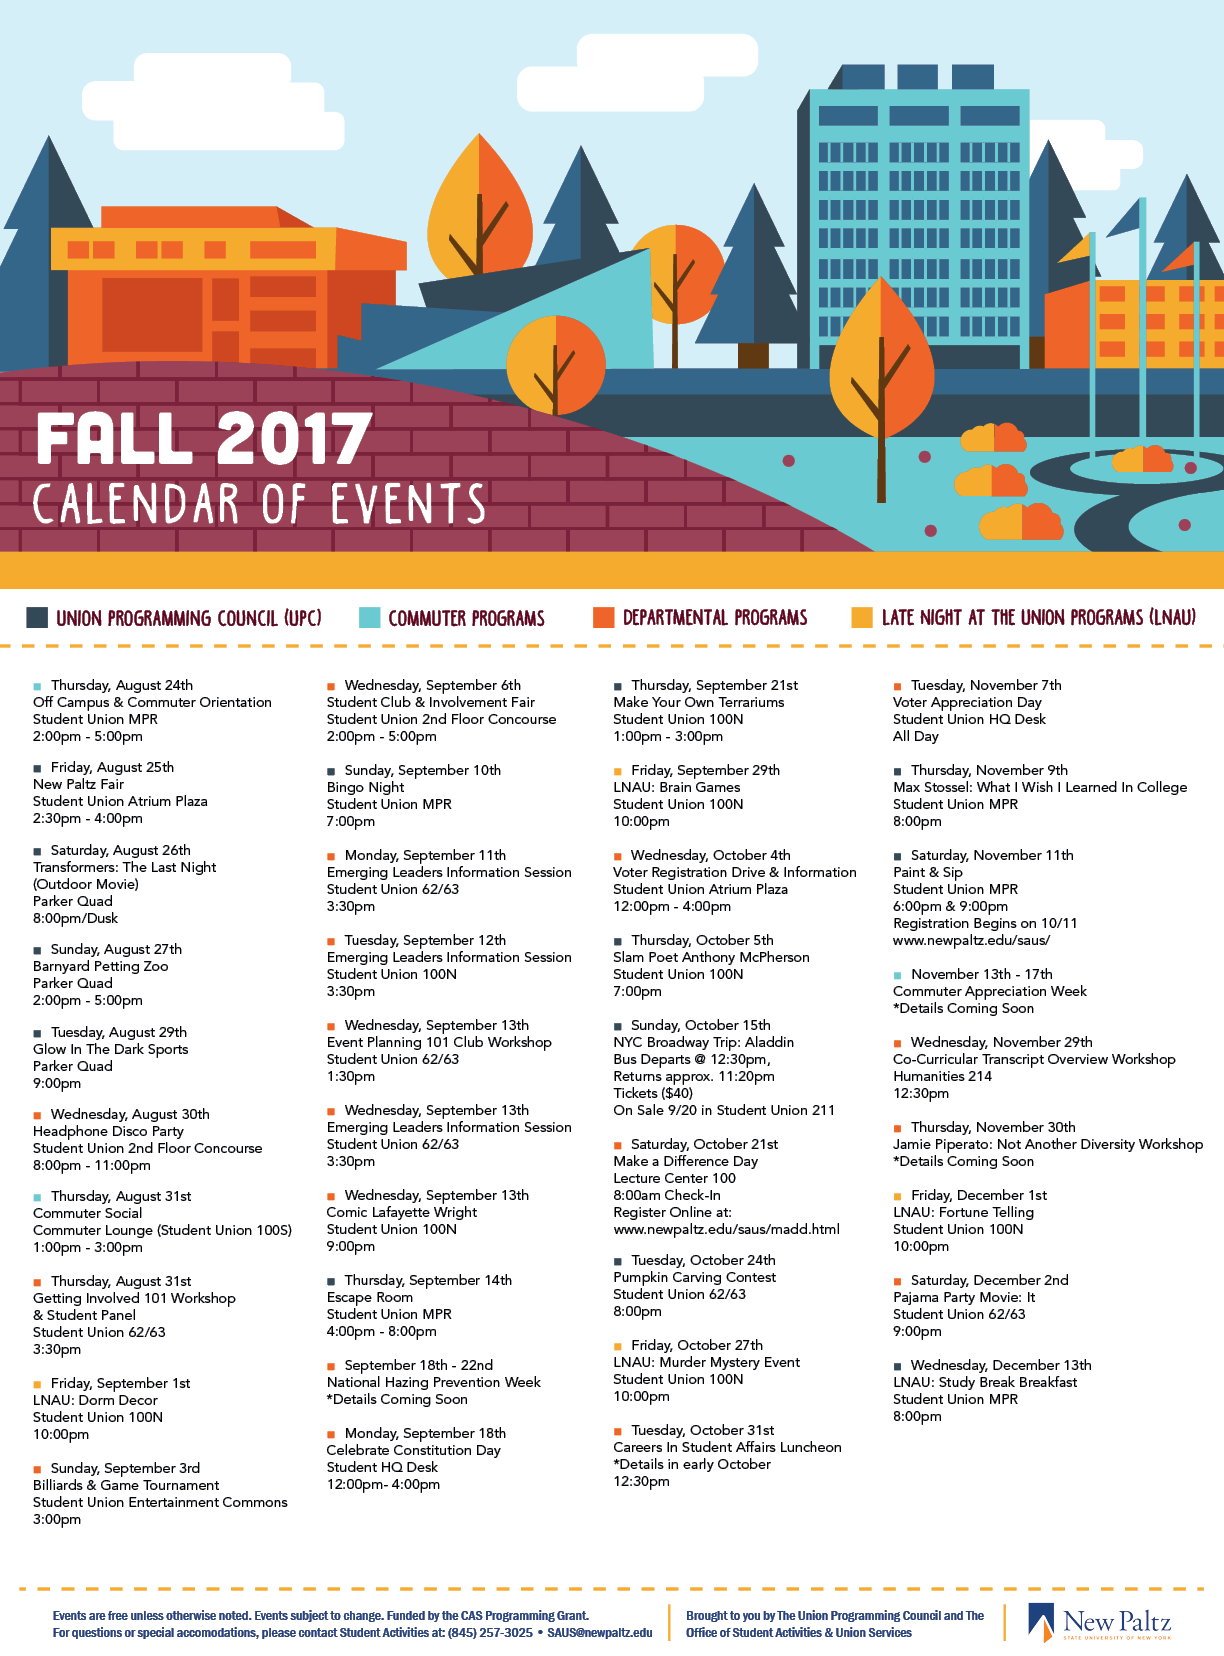 SUNY New paltz fall 2017 calendar of events - This is the official Calendar of Events for the Student Union Building at SUNY New Paltz for the Fall 2017 Semester. This is an illustration of the most recognizable part of campus, which is the Atrium that connects to the Student Union Building. The various oranges and blues are playing off the college's official colors. This calendar is 17in x 23in.The design was also translated into a snapchat filter that got approved for the campus (below). It also received recognition from the Dean of Students and was asked to be displayed on the college's official website.